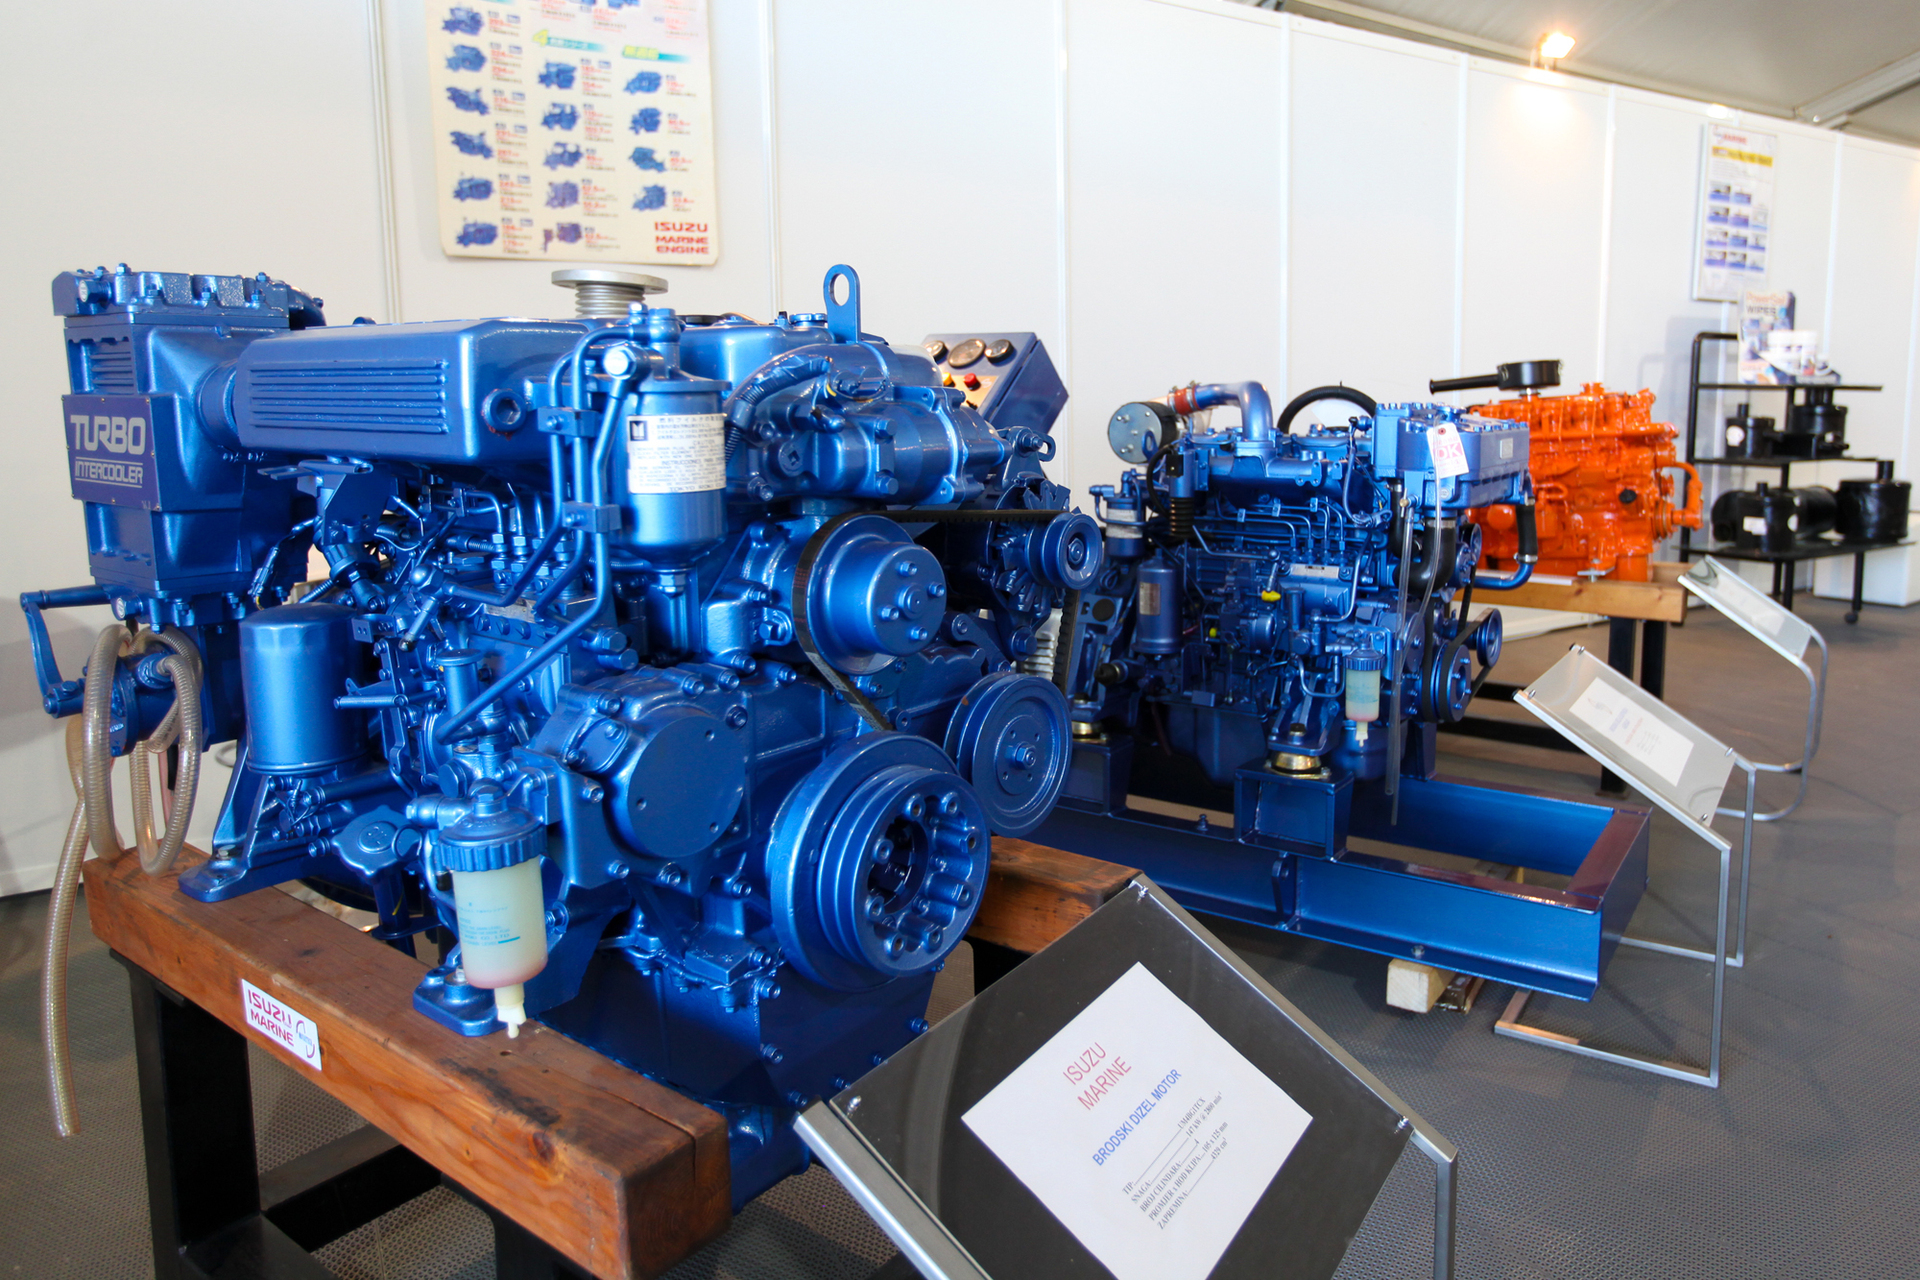 Steering and propulsion engines